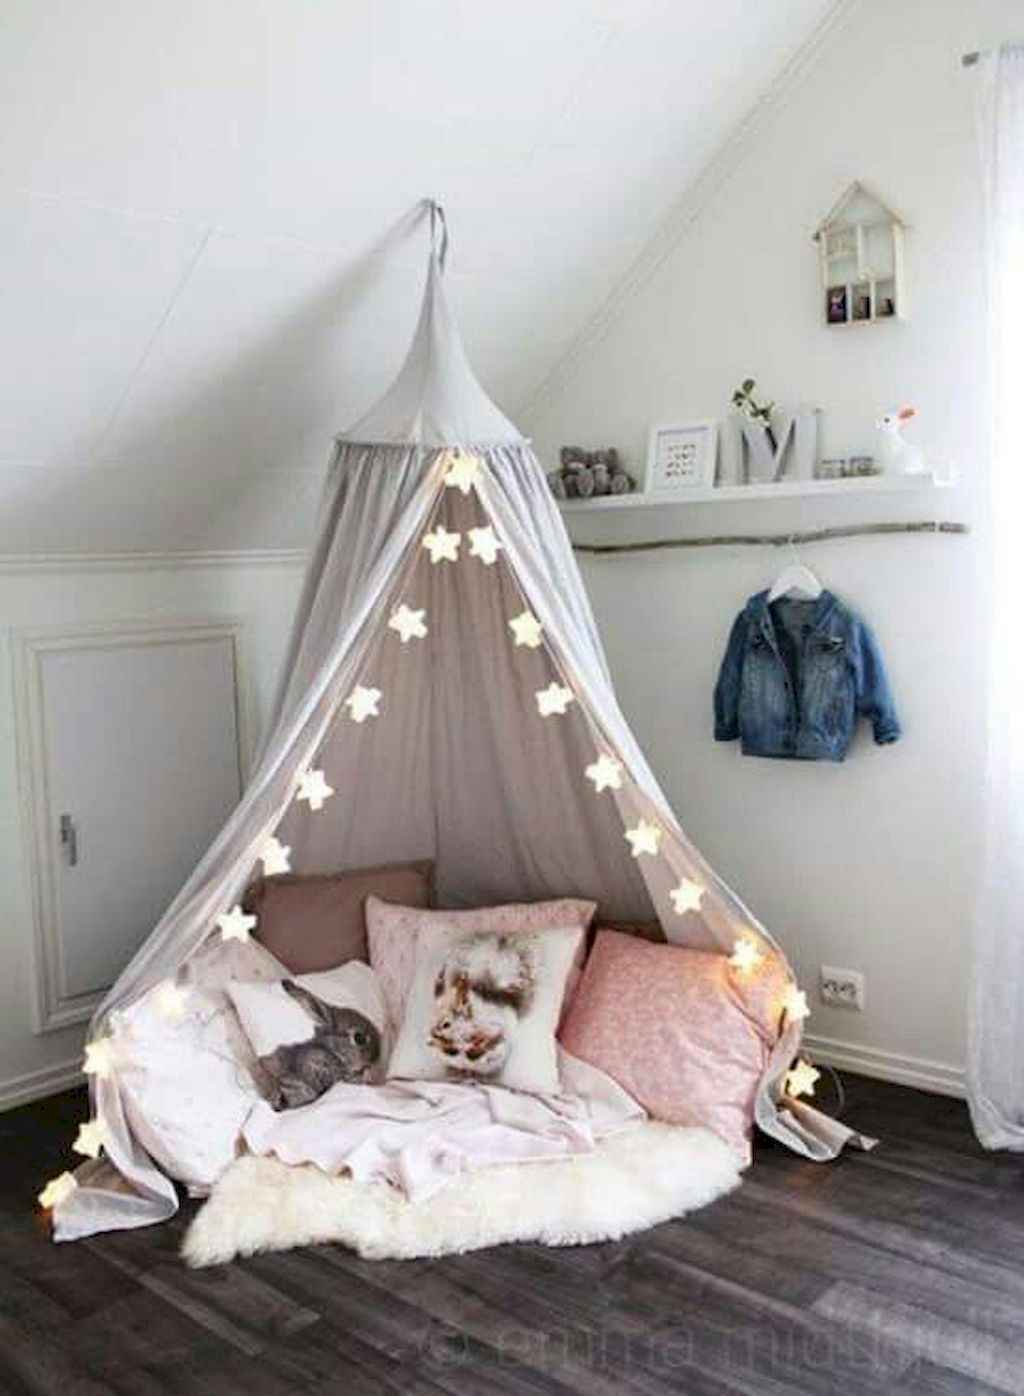 Awesome bedroom decoration ideas (6)